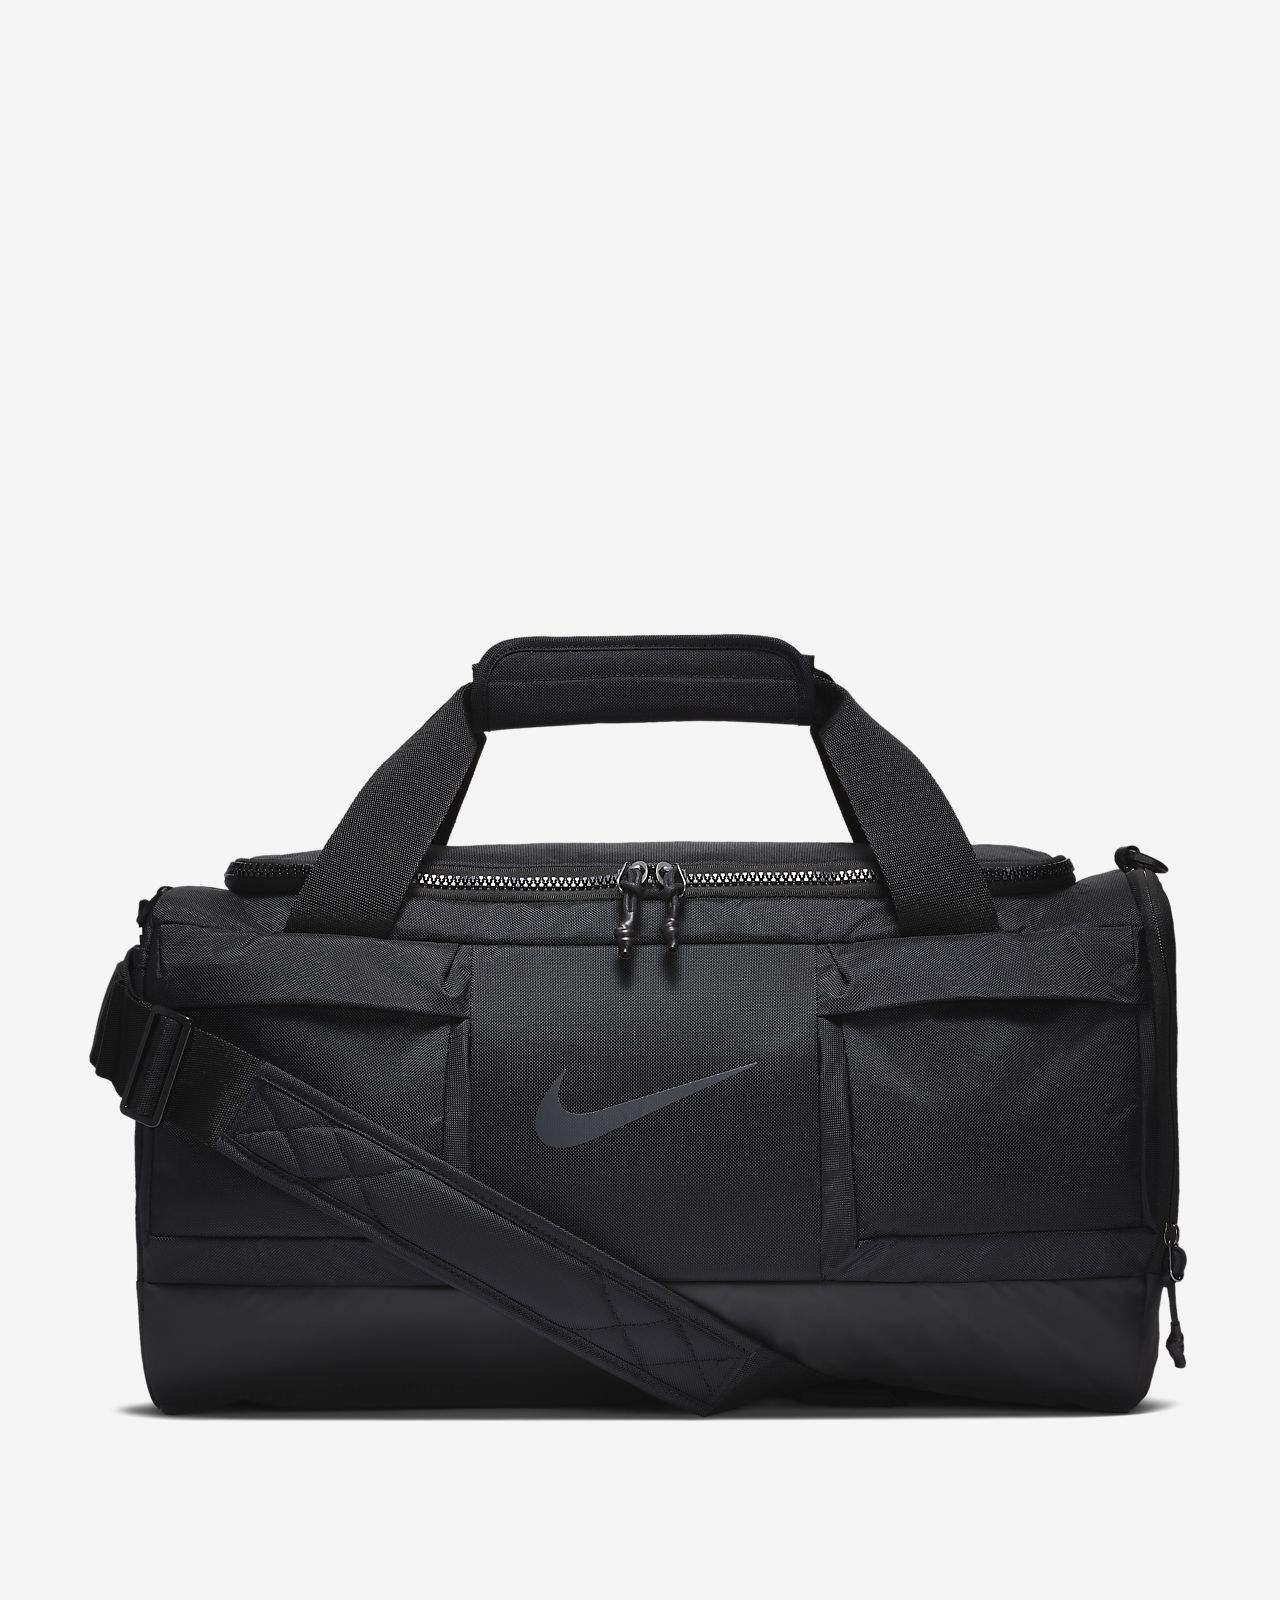 Nike Vapor Power Men s Training Duffel Bag (Small). Nike.com AU 647a14969be7a